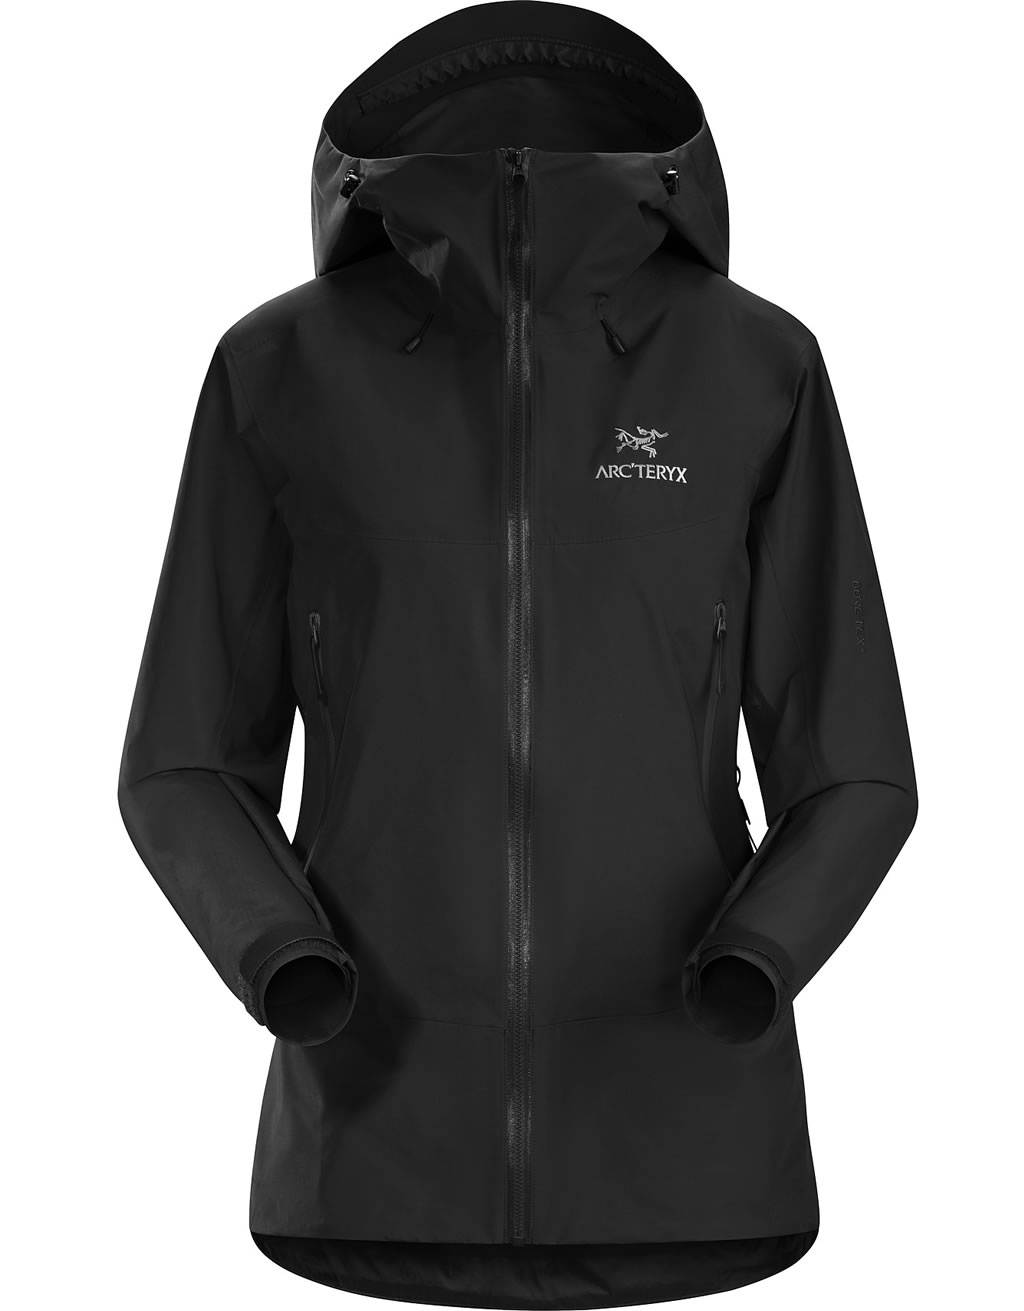 Black Beta SL Hybrid Jacket for Women